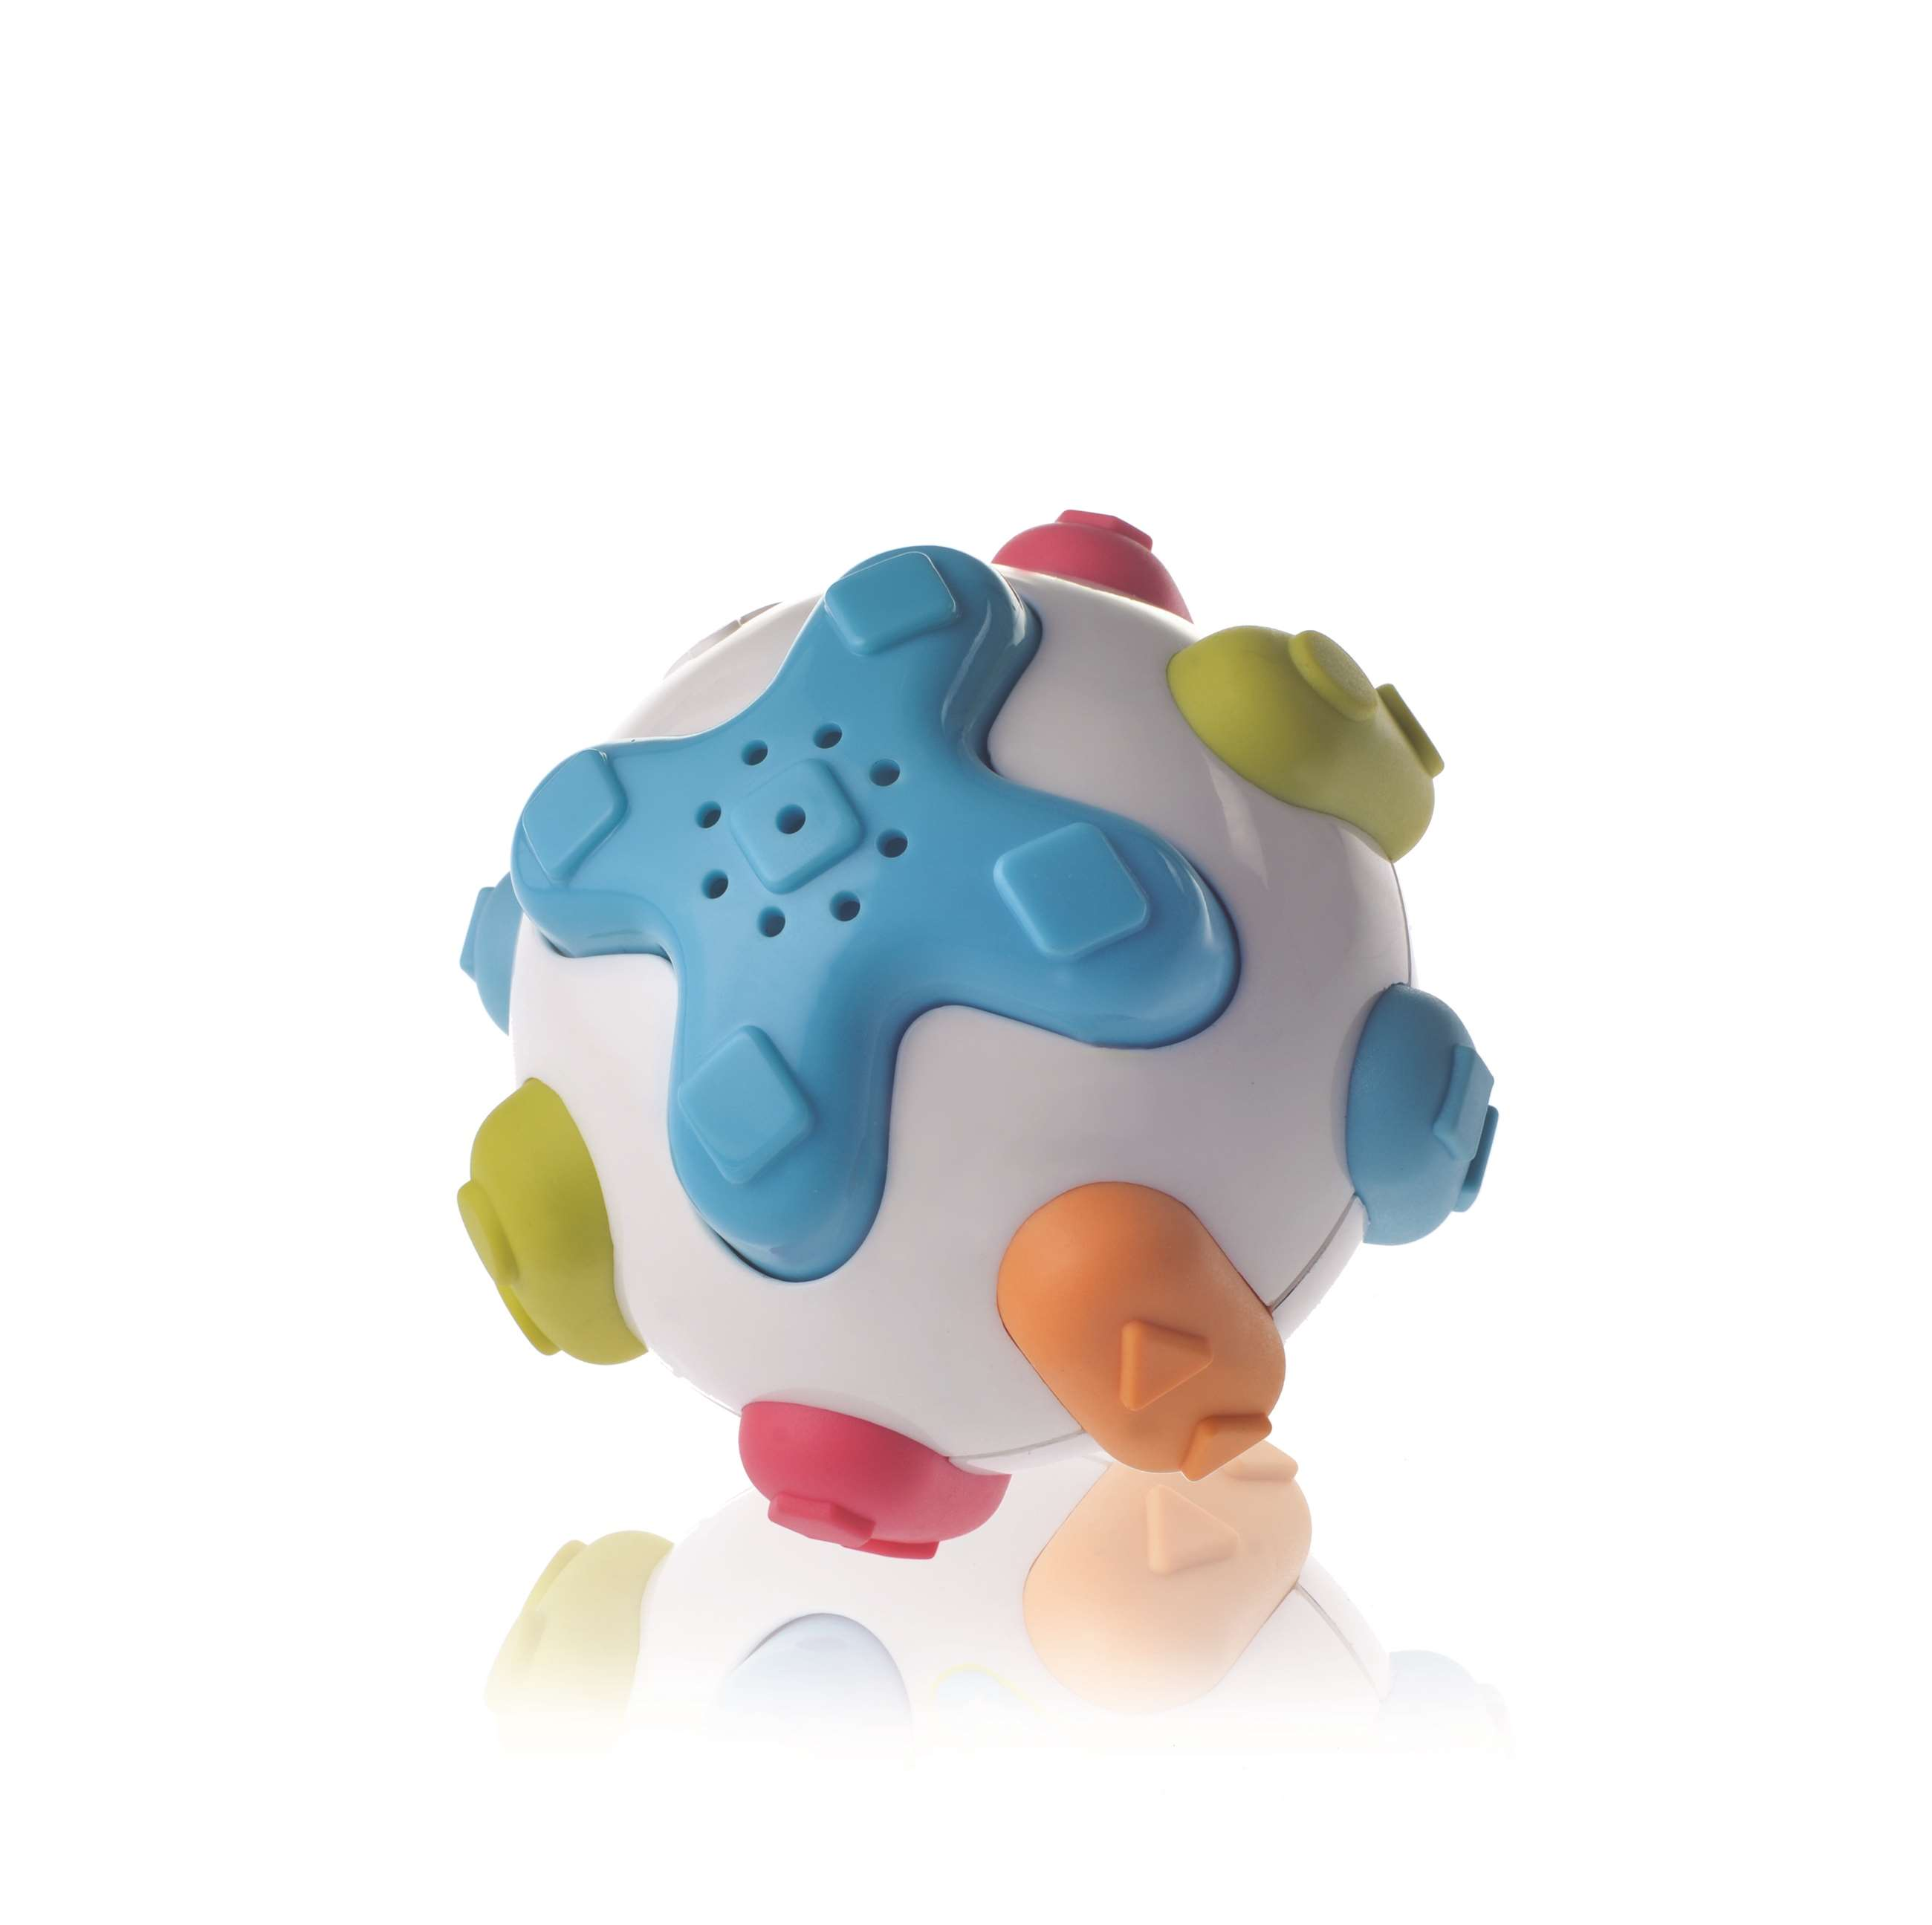 2631 - kidsme soft grip listen and learn ball9278-02